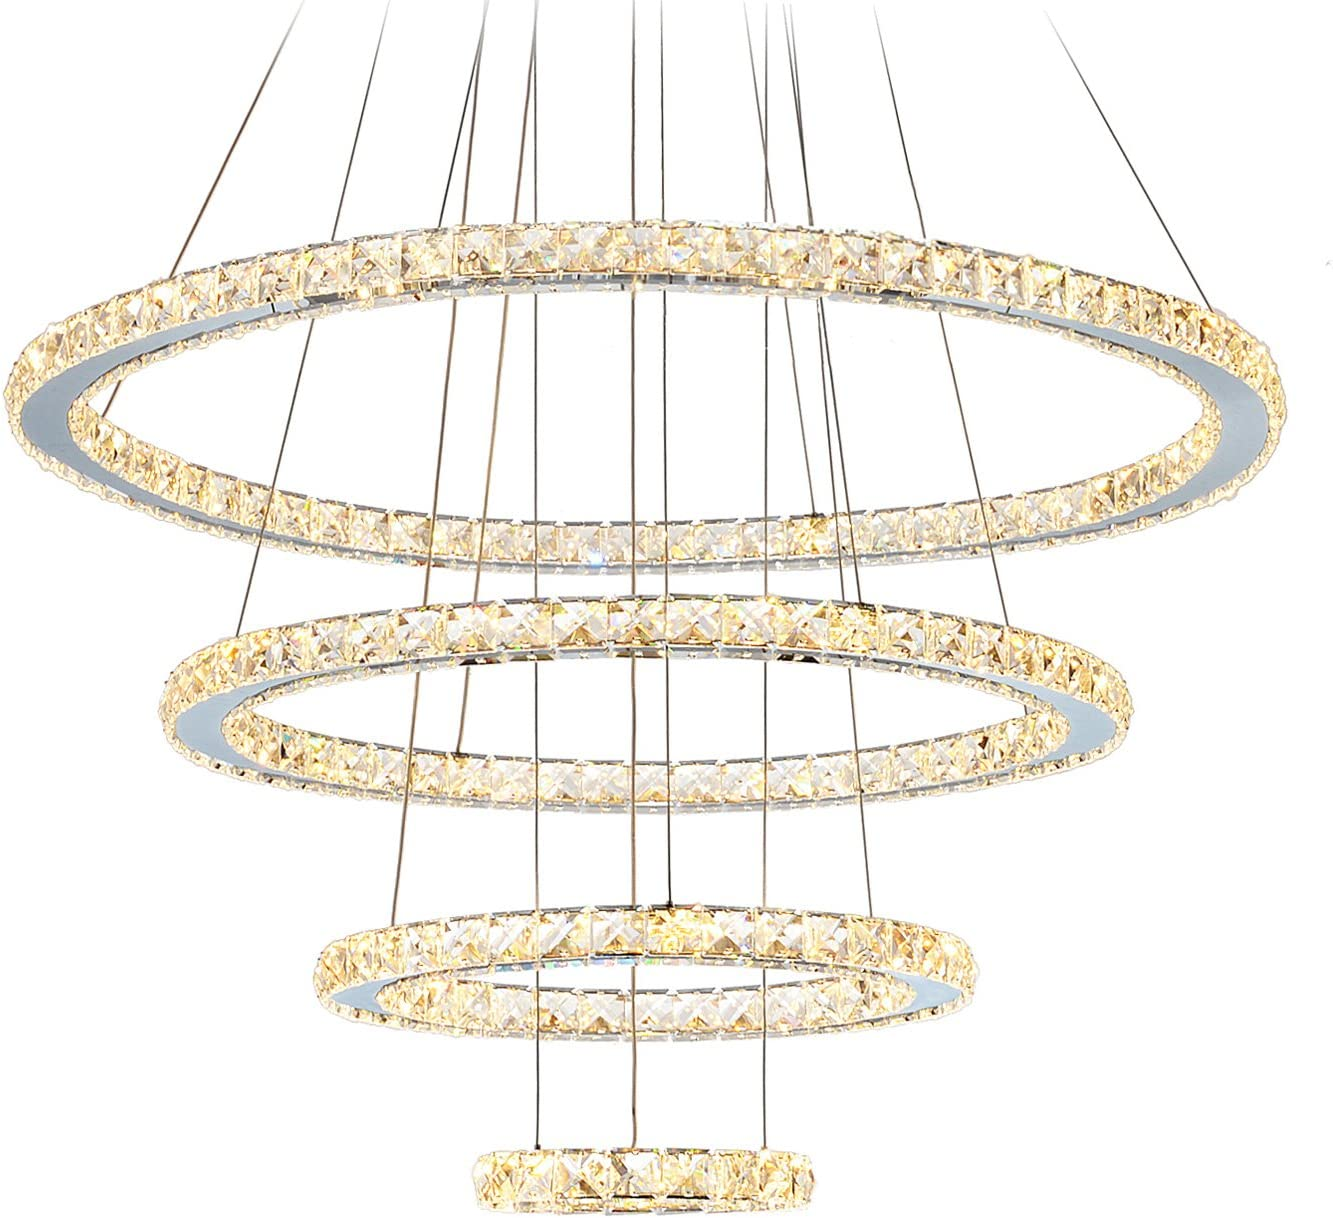 MEEROSEE LED Crystal Chandeliers Modern Ceiling Lights Light Fixtures Pendant Lighting Dining Room Chandelier Contemporary Adjustable Stainless Steel Cable 4 Rings DIY Design D31.5 23.6 15.7 7.8